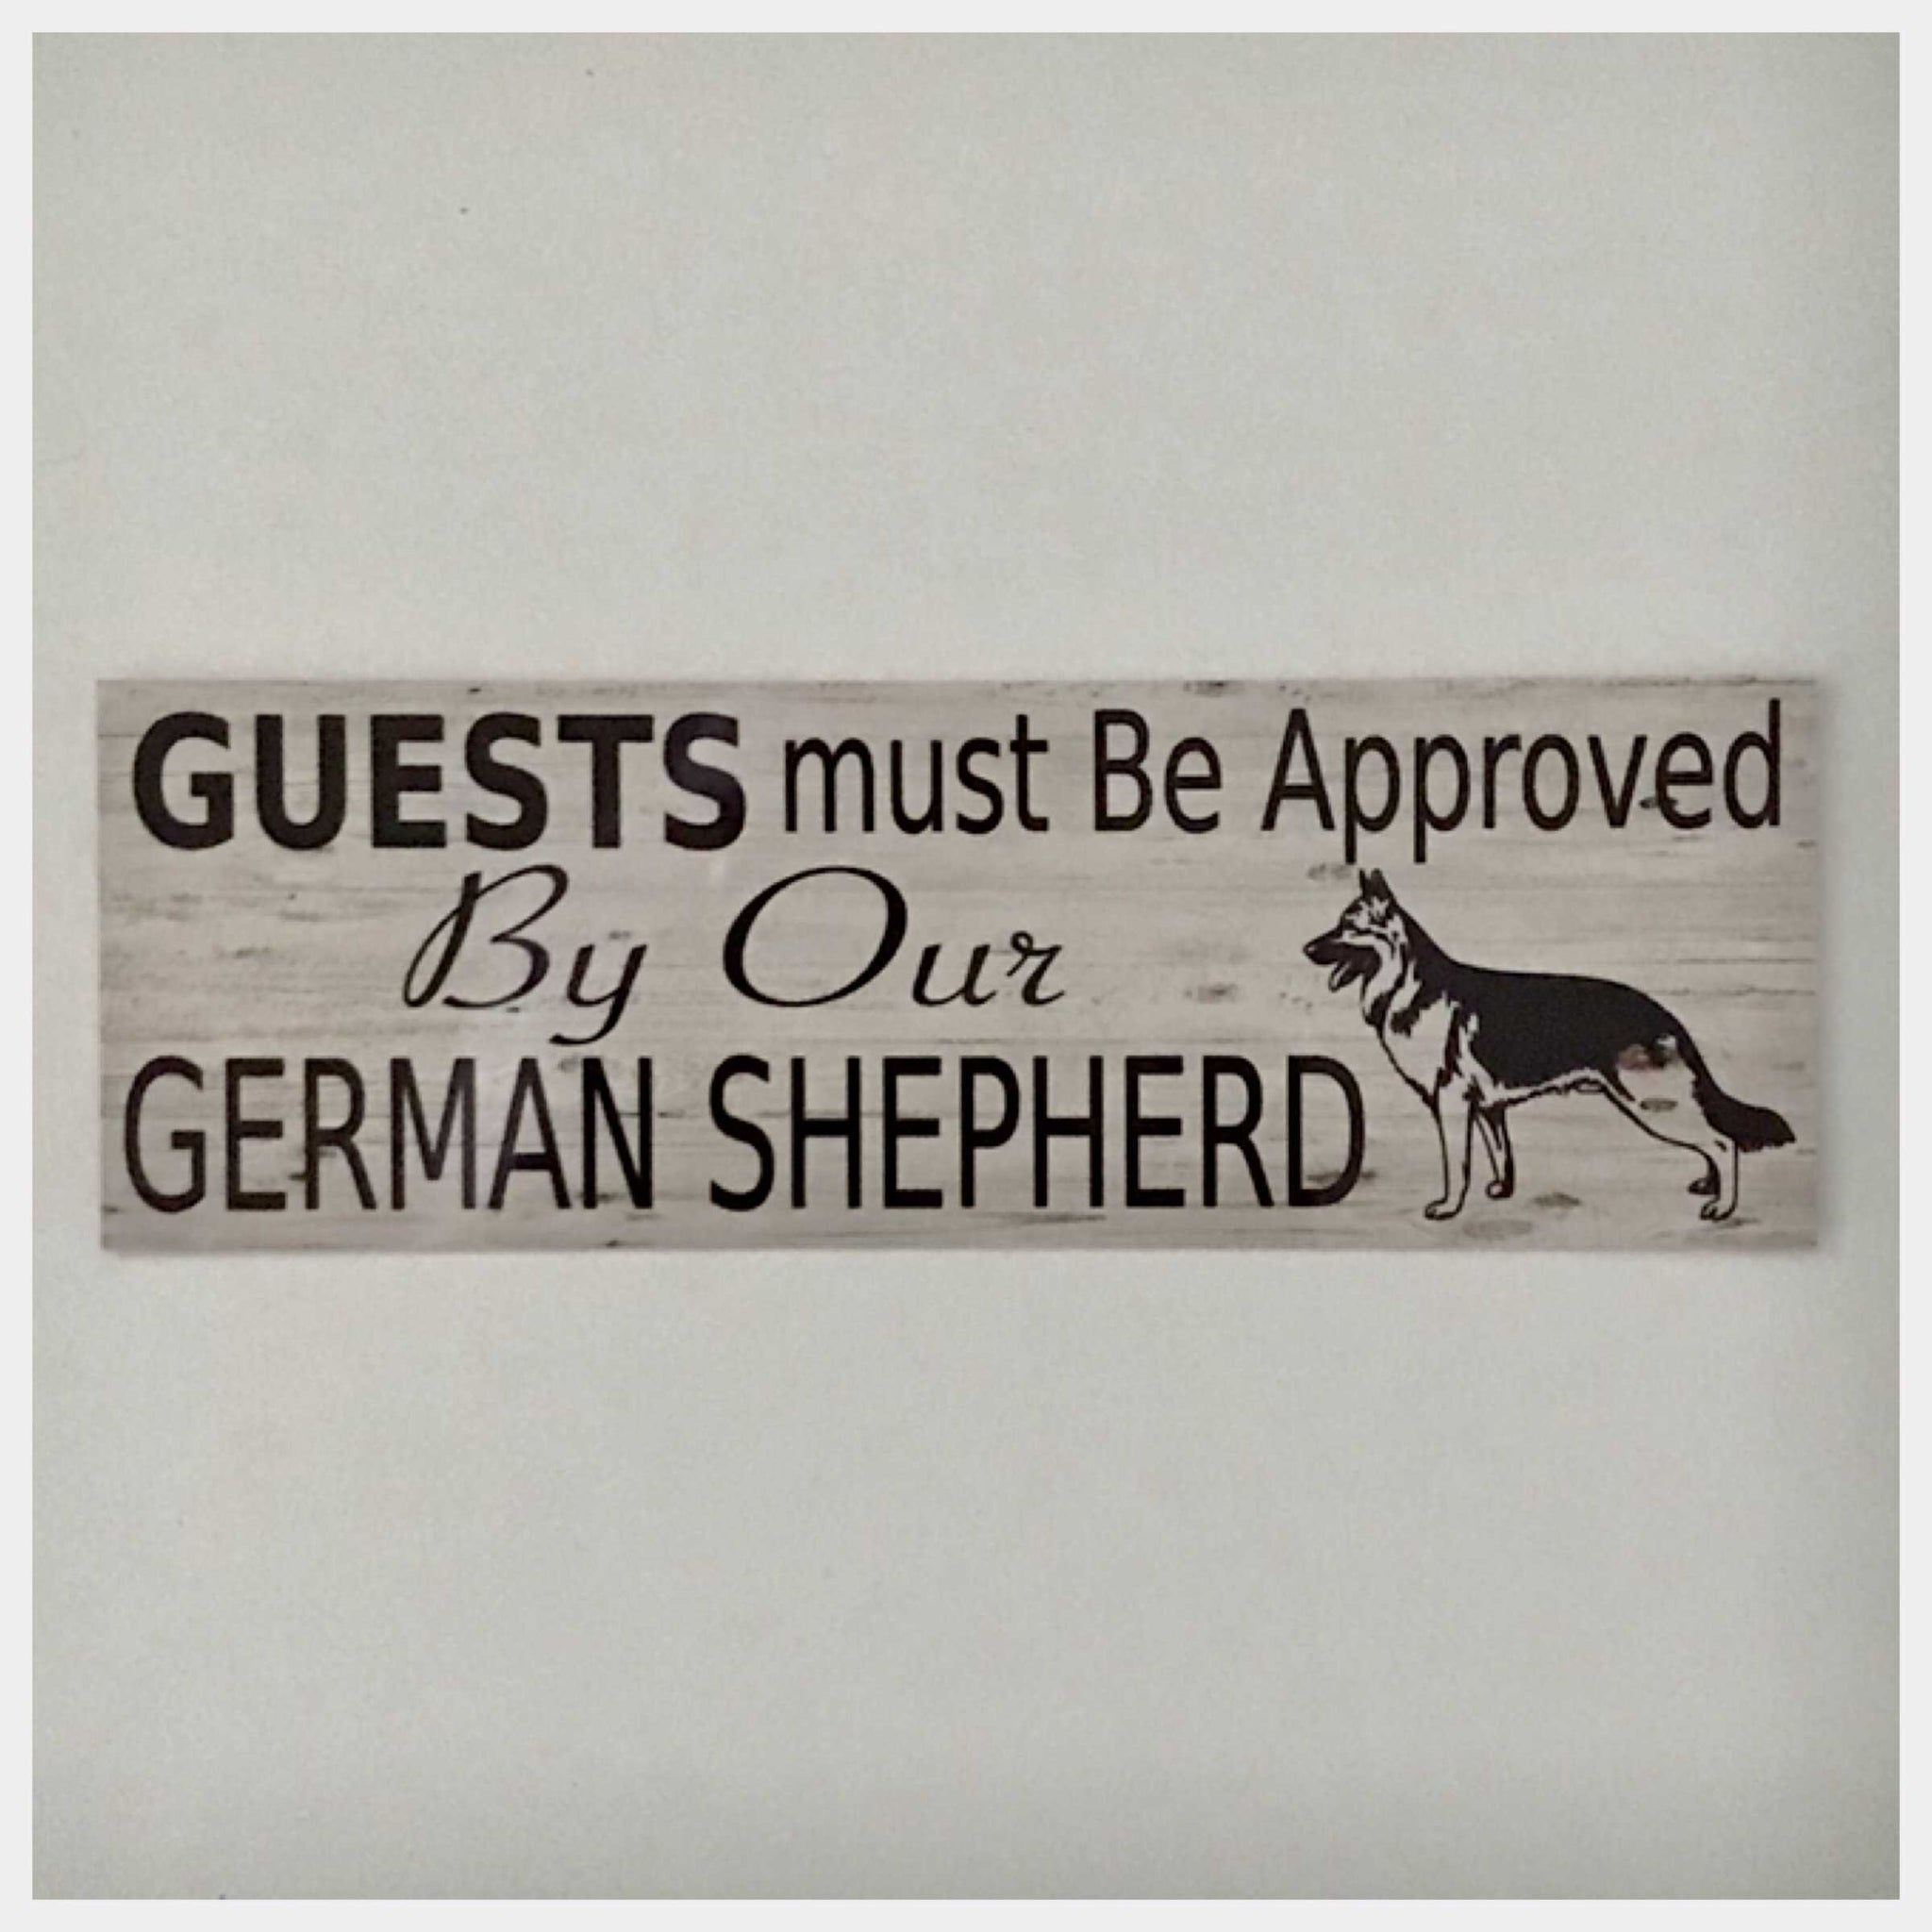 German Shepherd Dog Guests Must Be Approved By Our Sign Pet Plaques & Signs The Renmy Store